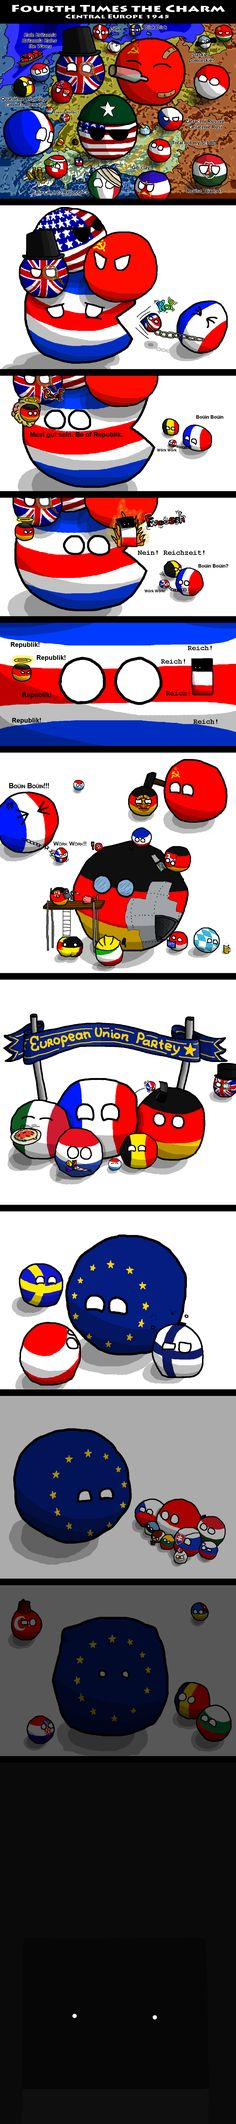 Fourth time's the charm via reddit